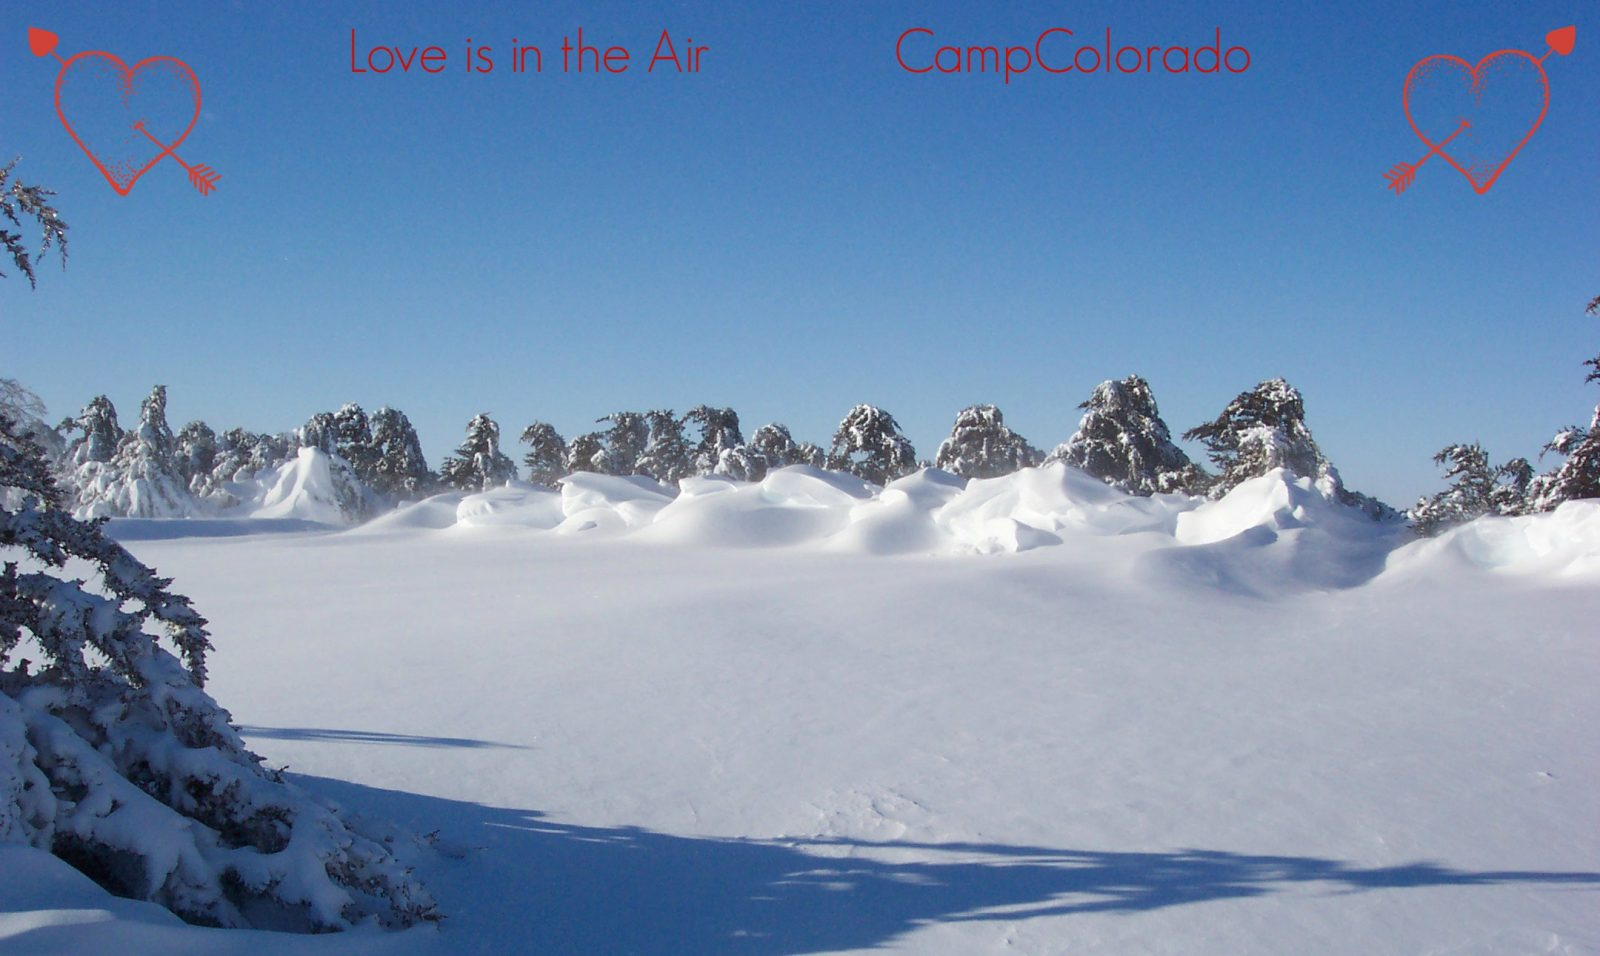 Blend Winter Adventure With Valentine Romance While Camping in Colorado